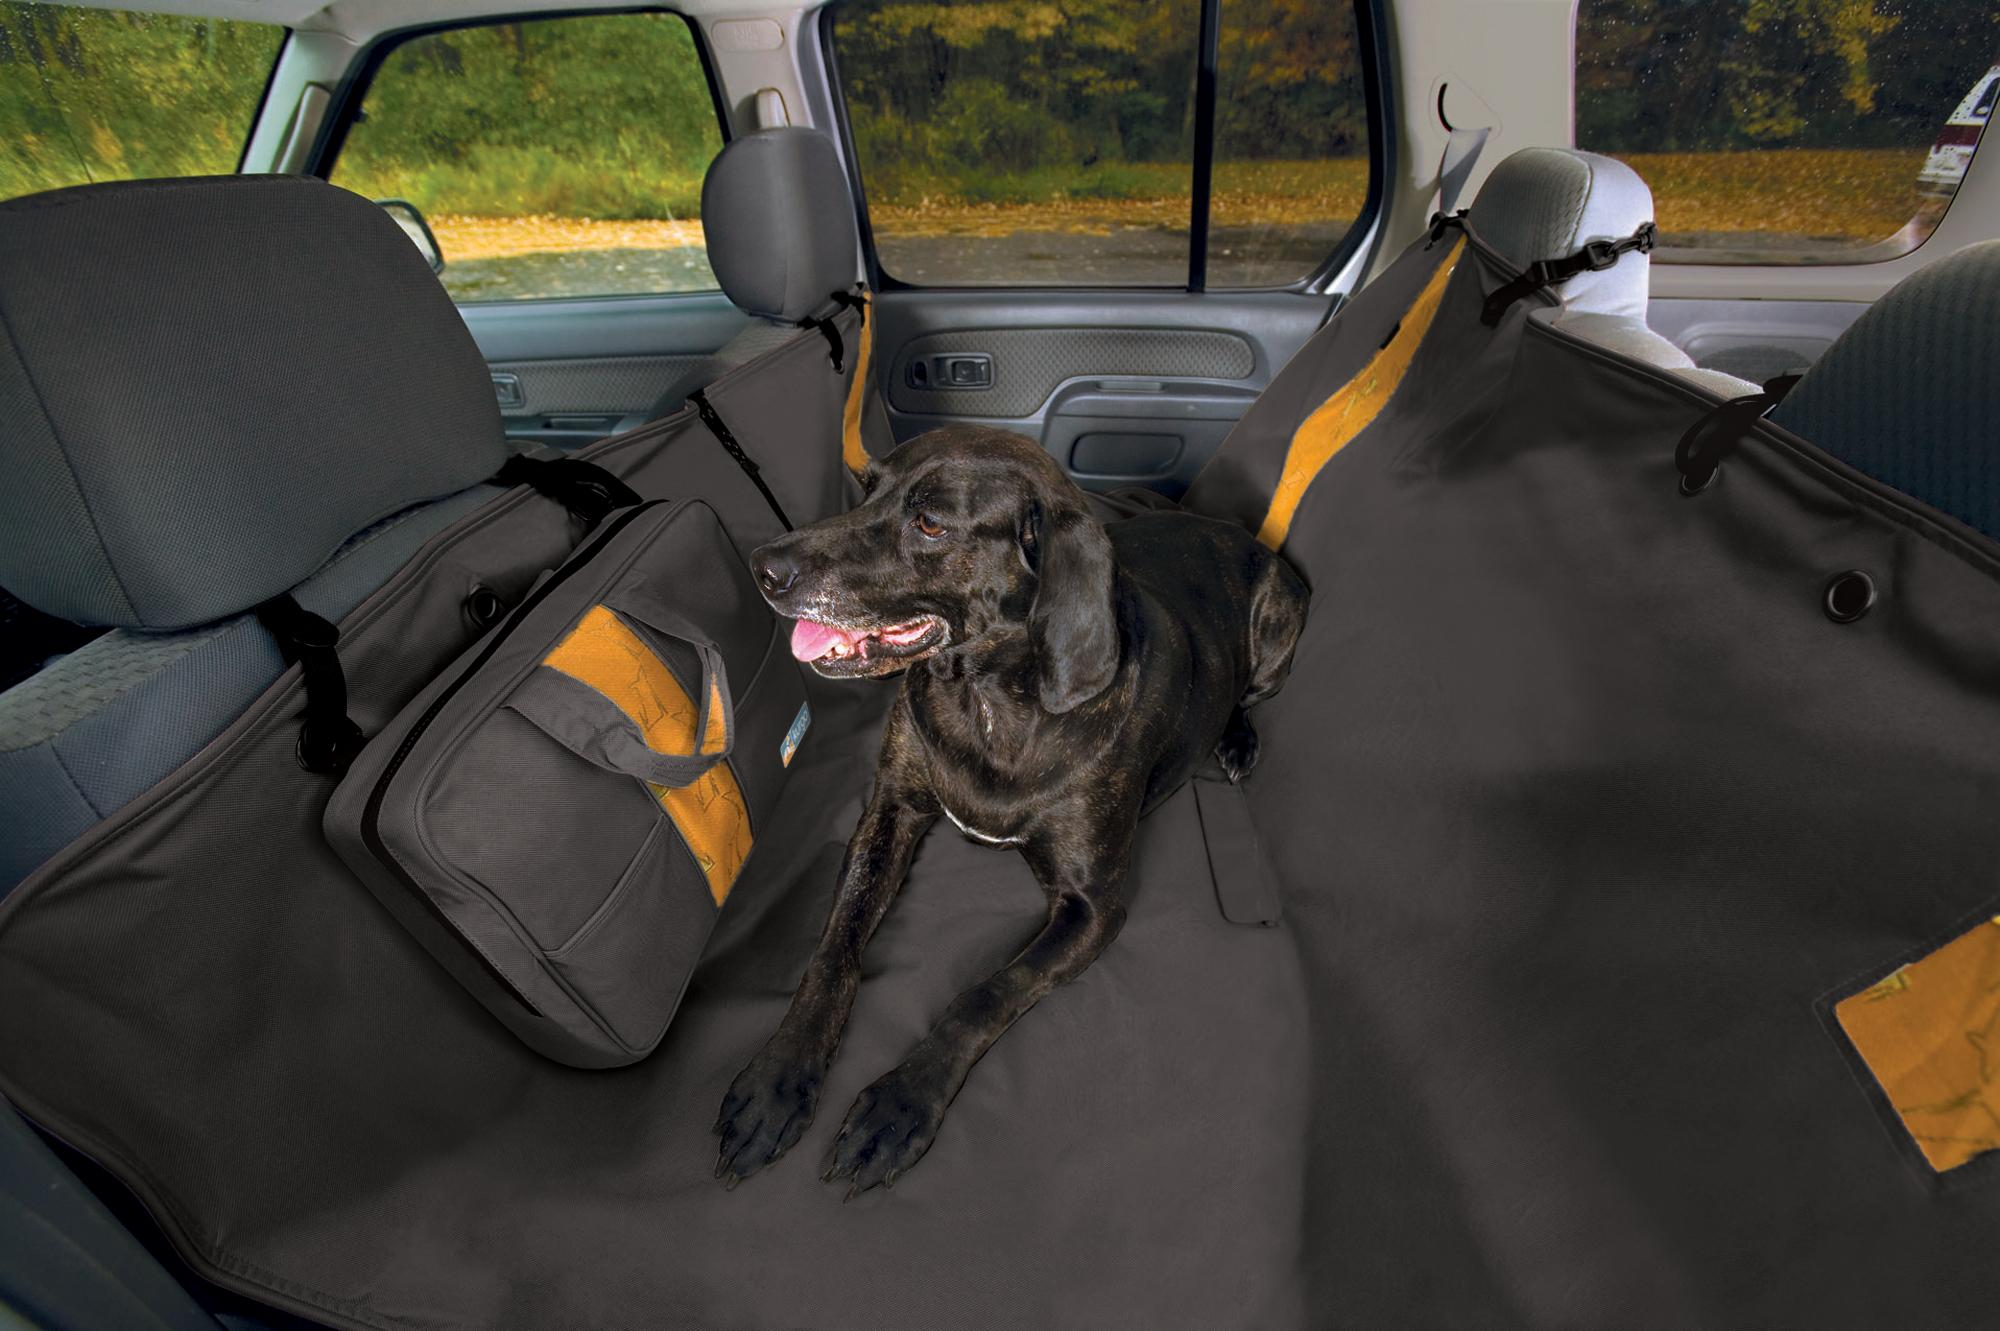 kurgo dog hammock for back seat of car converts to rear seat cover waterproof and scratch. Black Bedroom Furniture Sets. Home Design Ideas